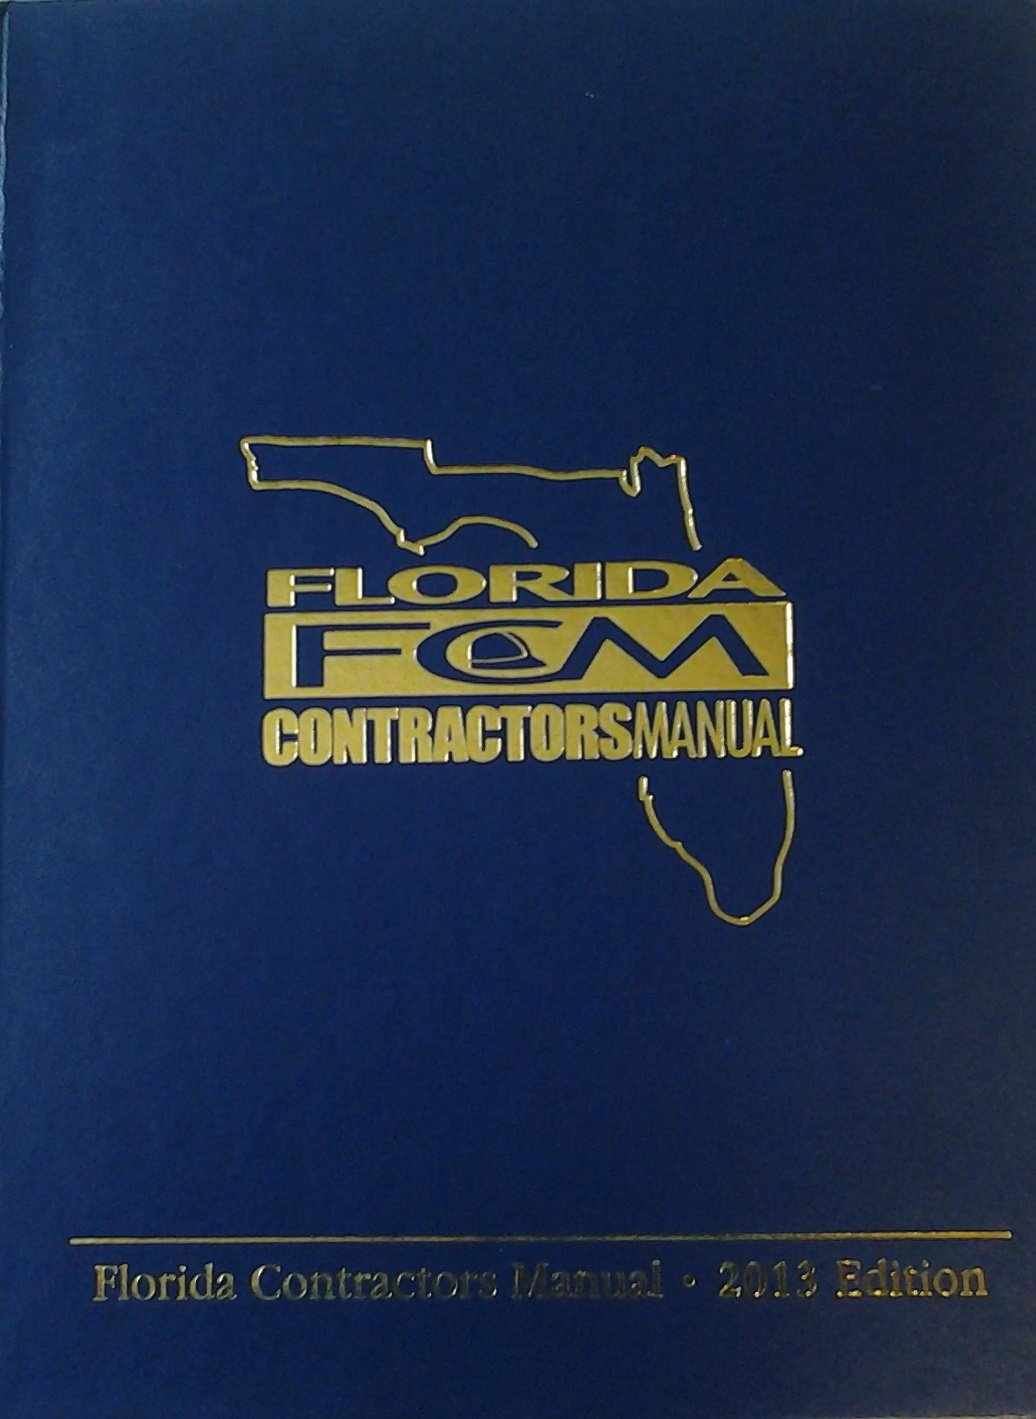 Florida contractors manual 2013 inc associated builders and florida contractors manual 2013 inc associated builders and contractors 9789781232015 amazon books fandeluxe Choice Image